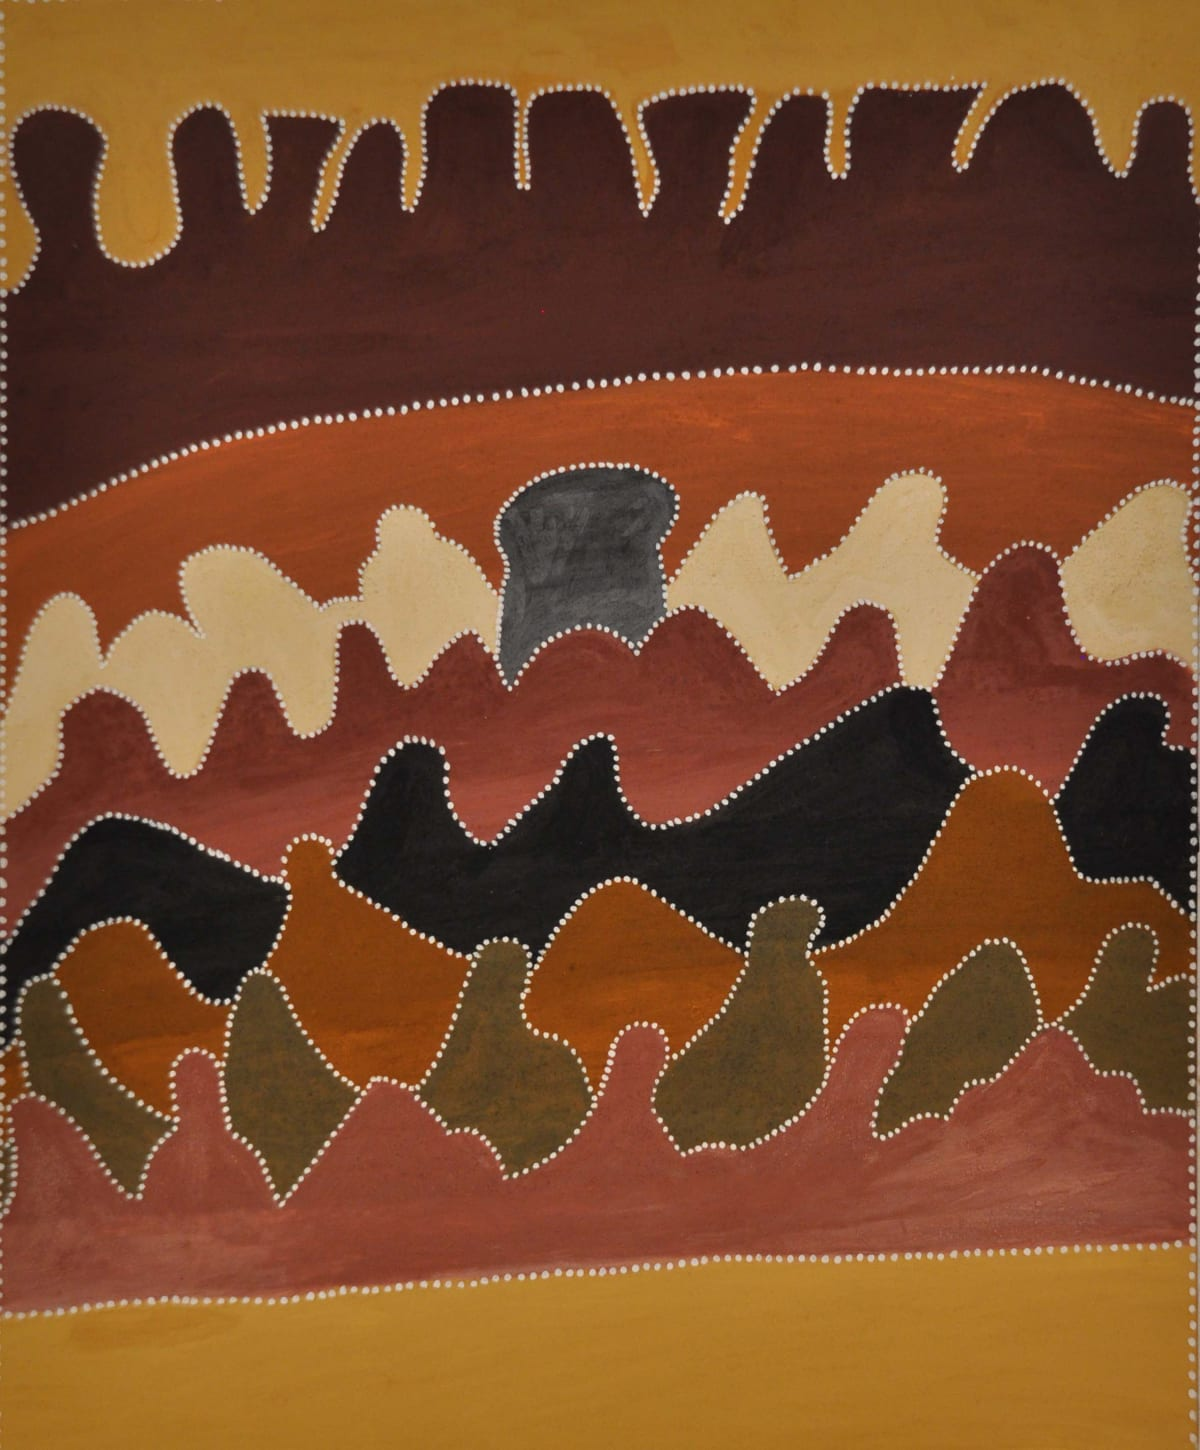 Betty Carrington Ngarrgooroon natural ochre and pigments on canvas 100 x 120 cm